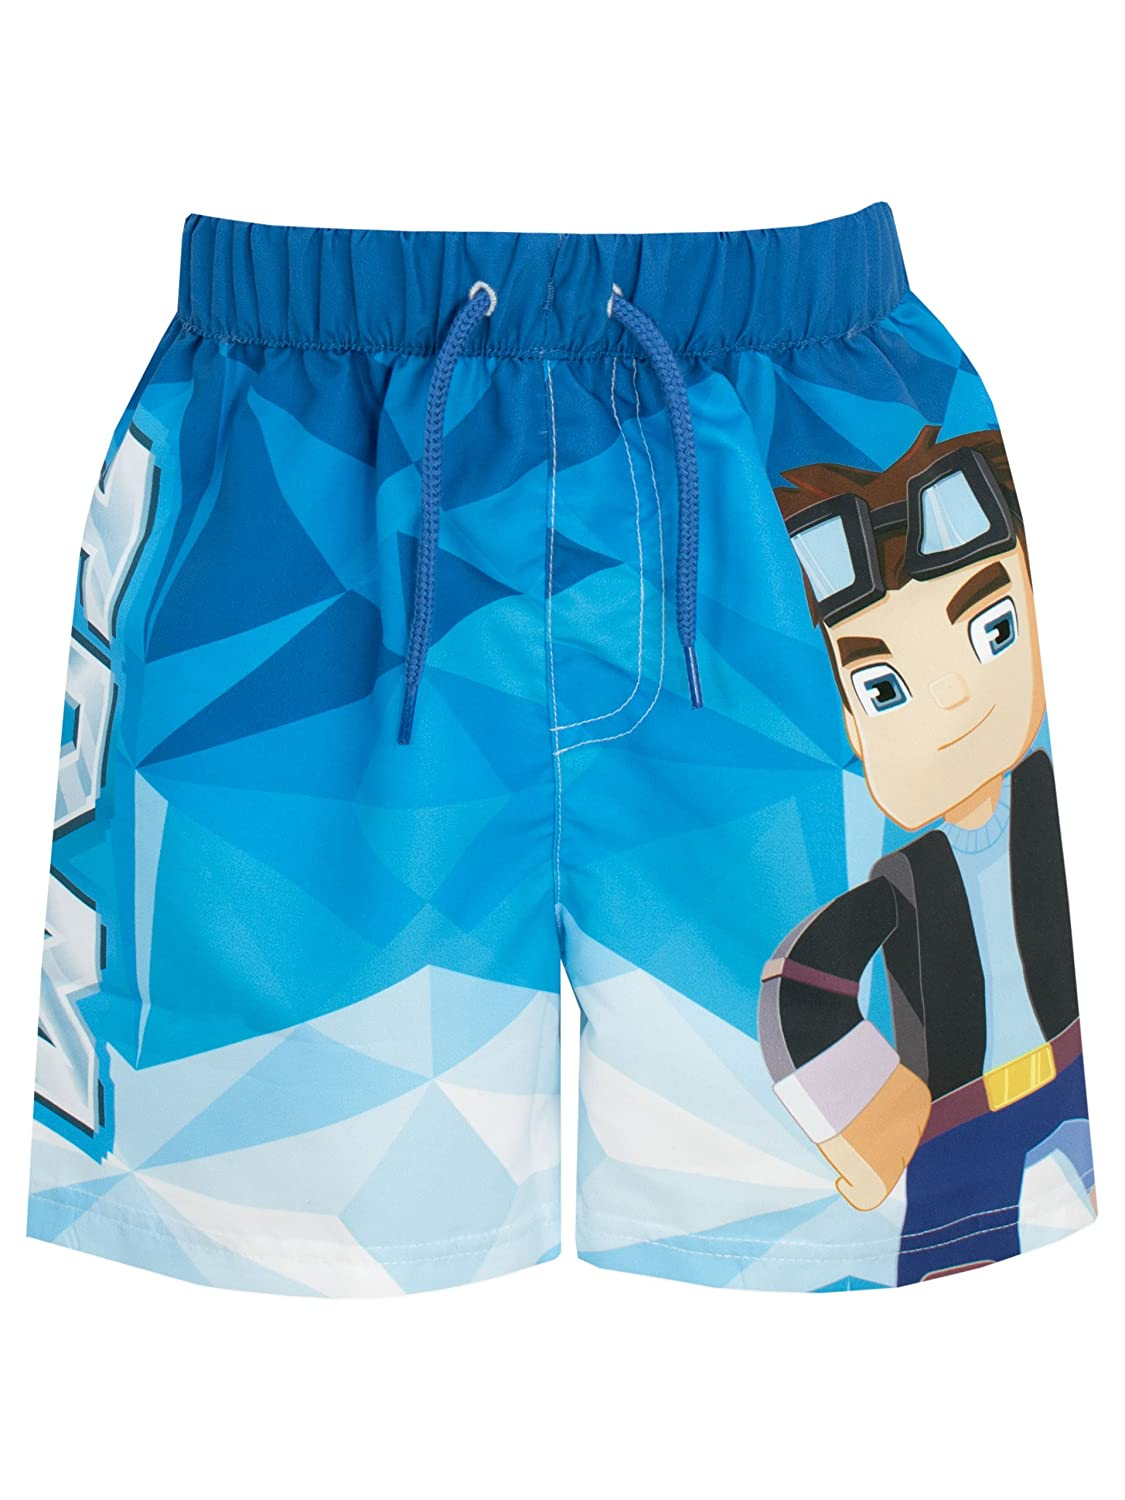 Tube Heroes Boys Dan TDM Swim Shorts Ages 5 to 13 Years